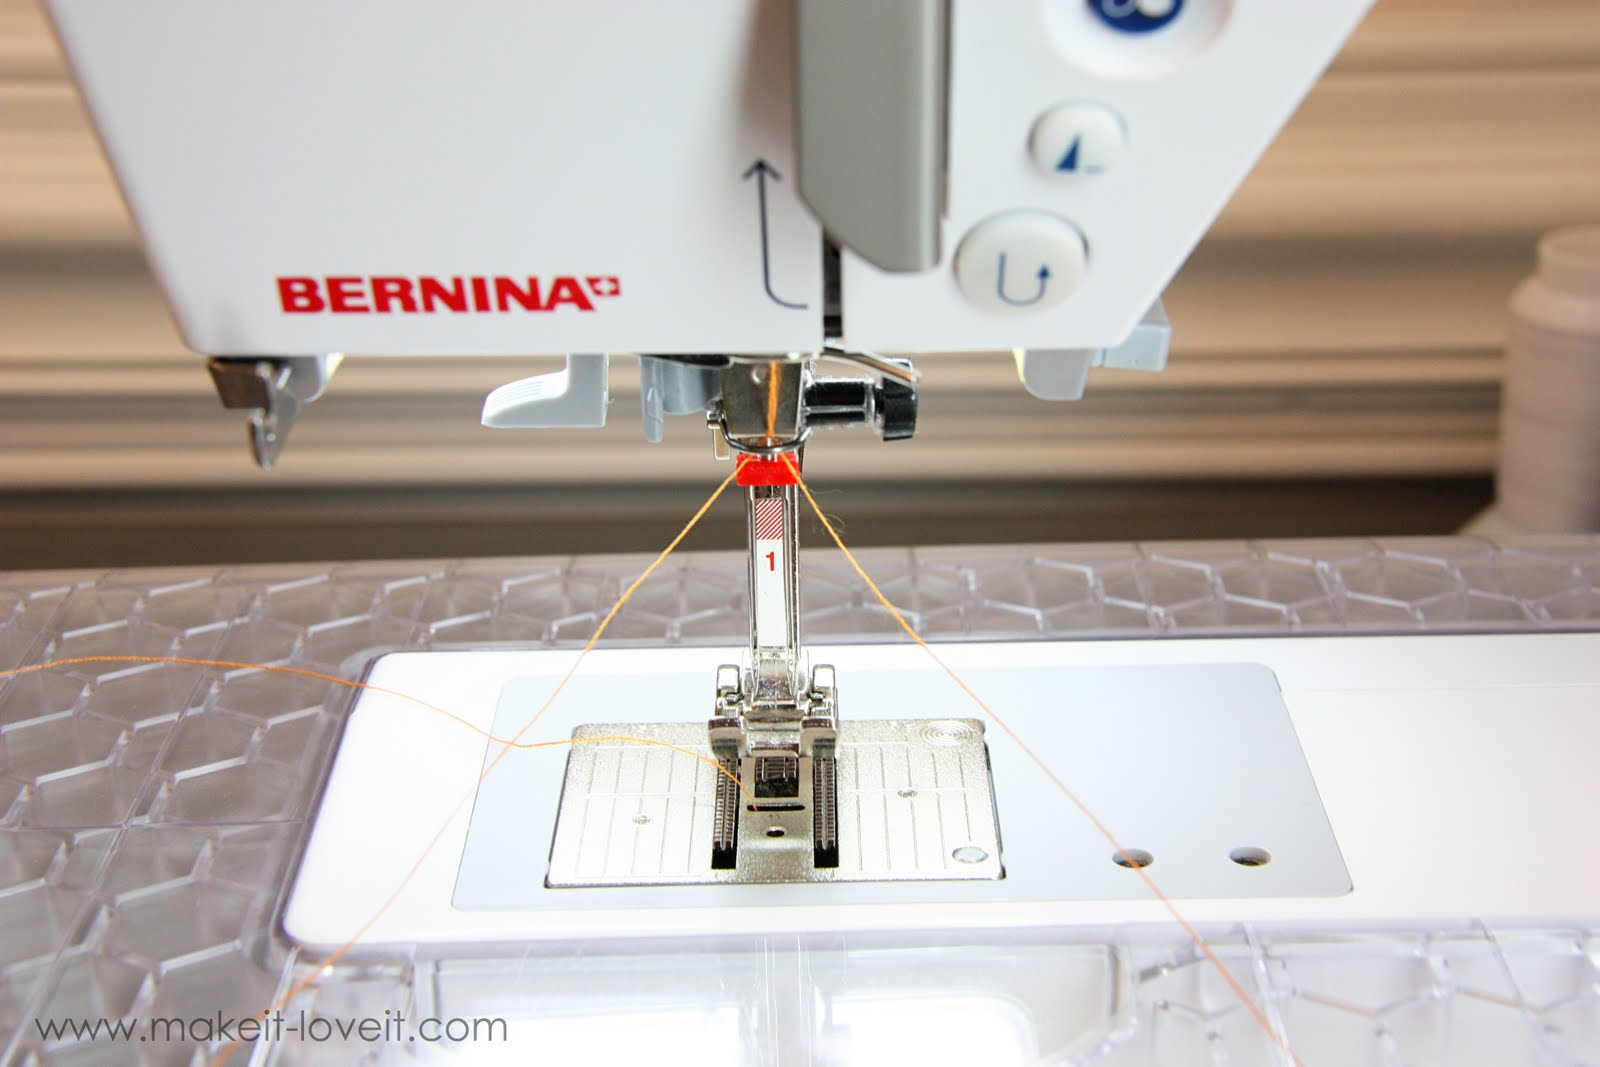 Sewing Tips Basic Stitches Plus The Double Needle Make It And Bernina 830 Machine Threading Diagram Love